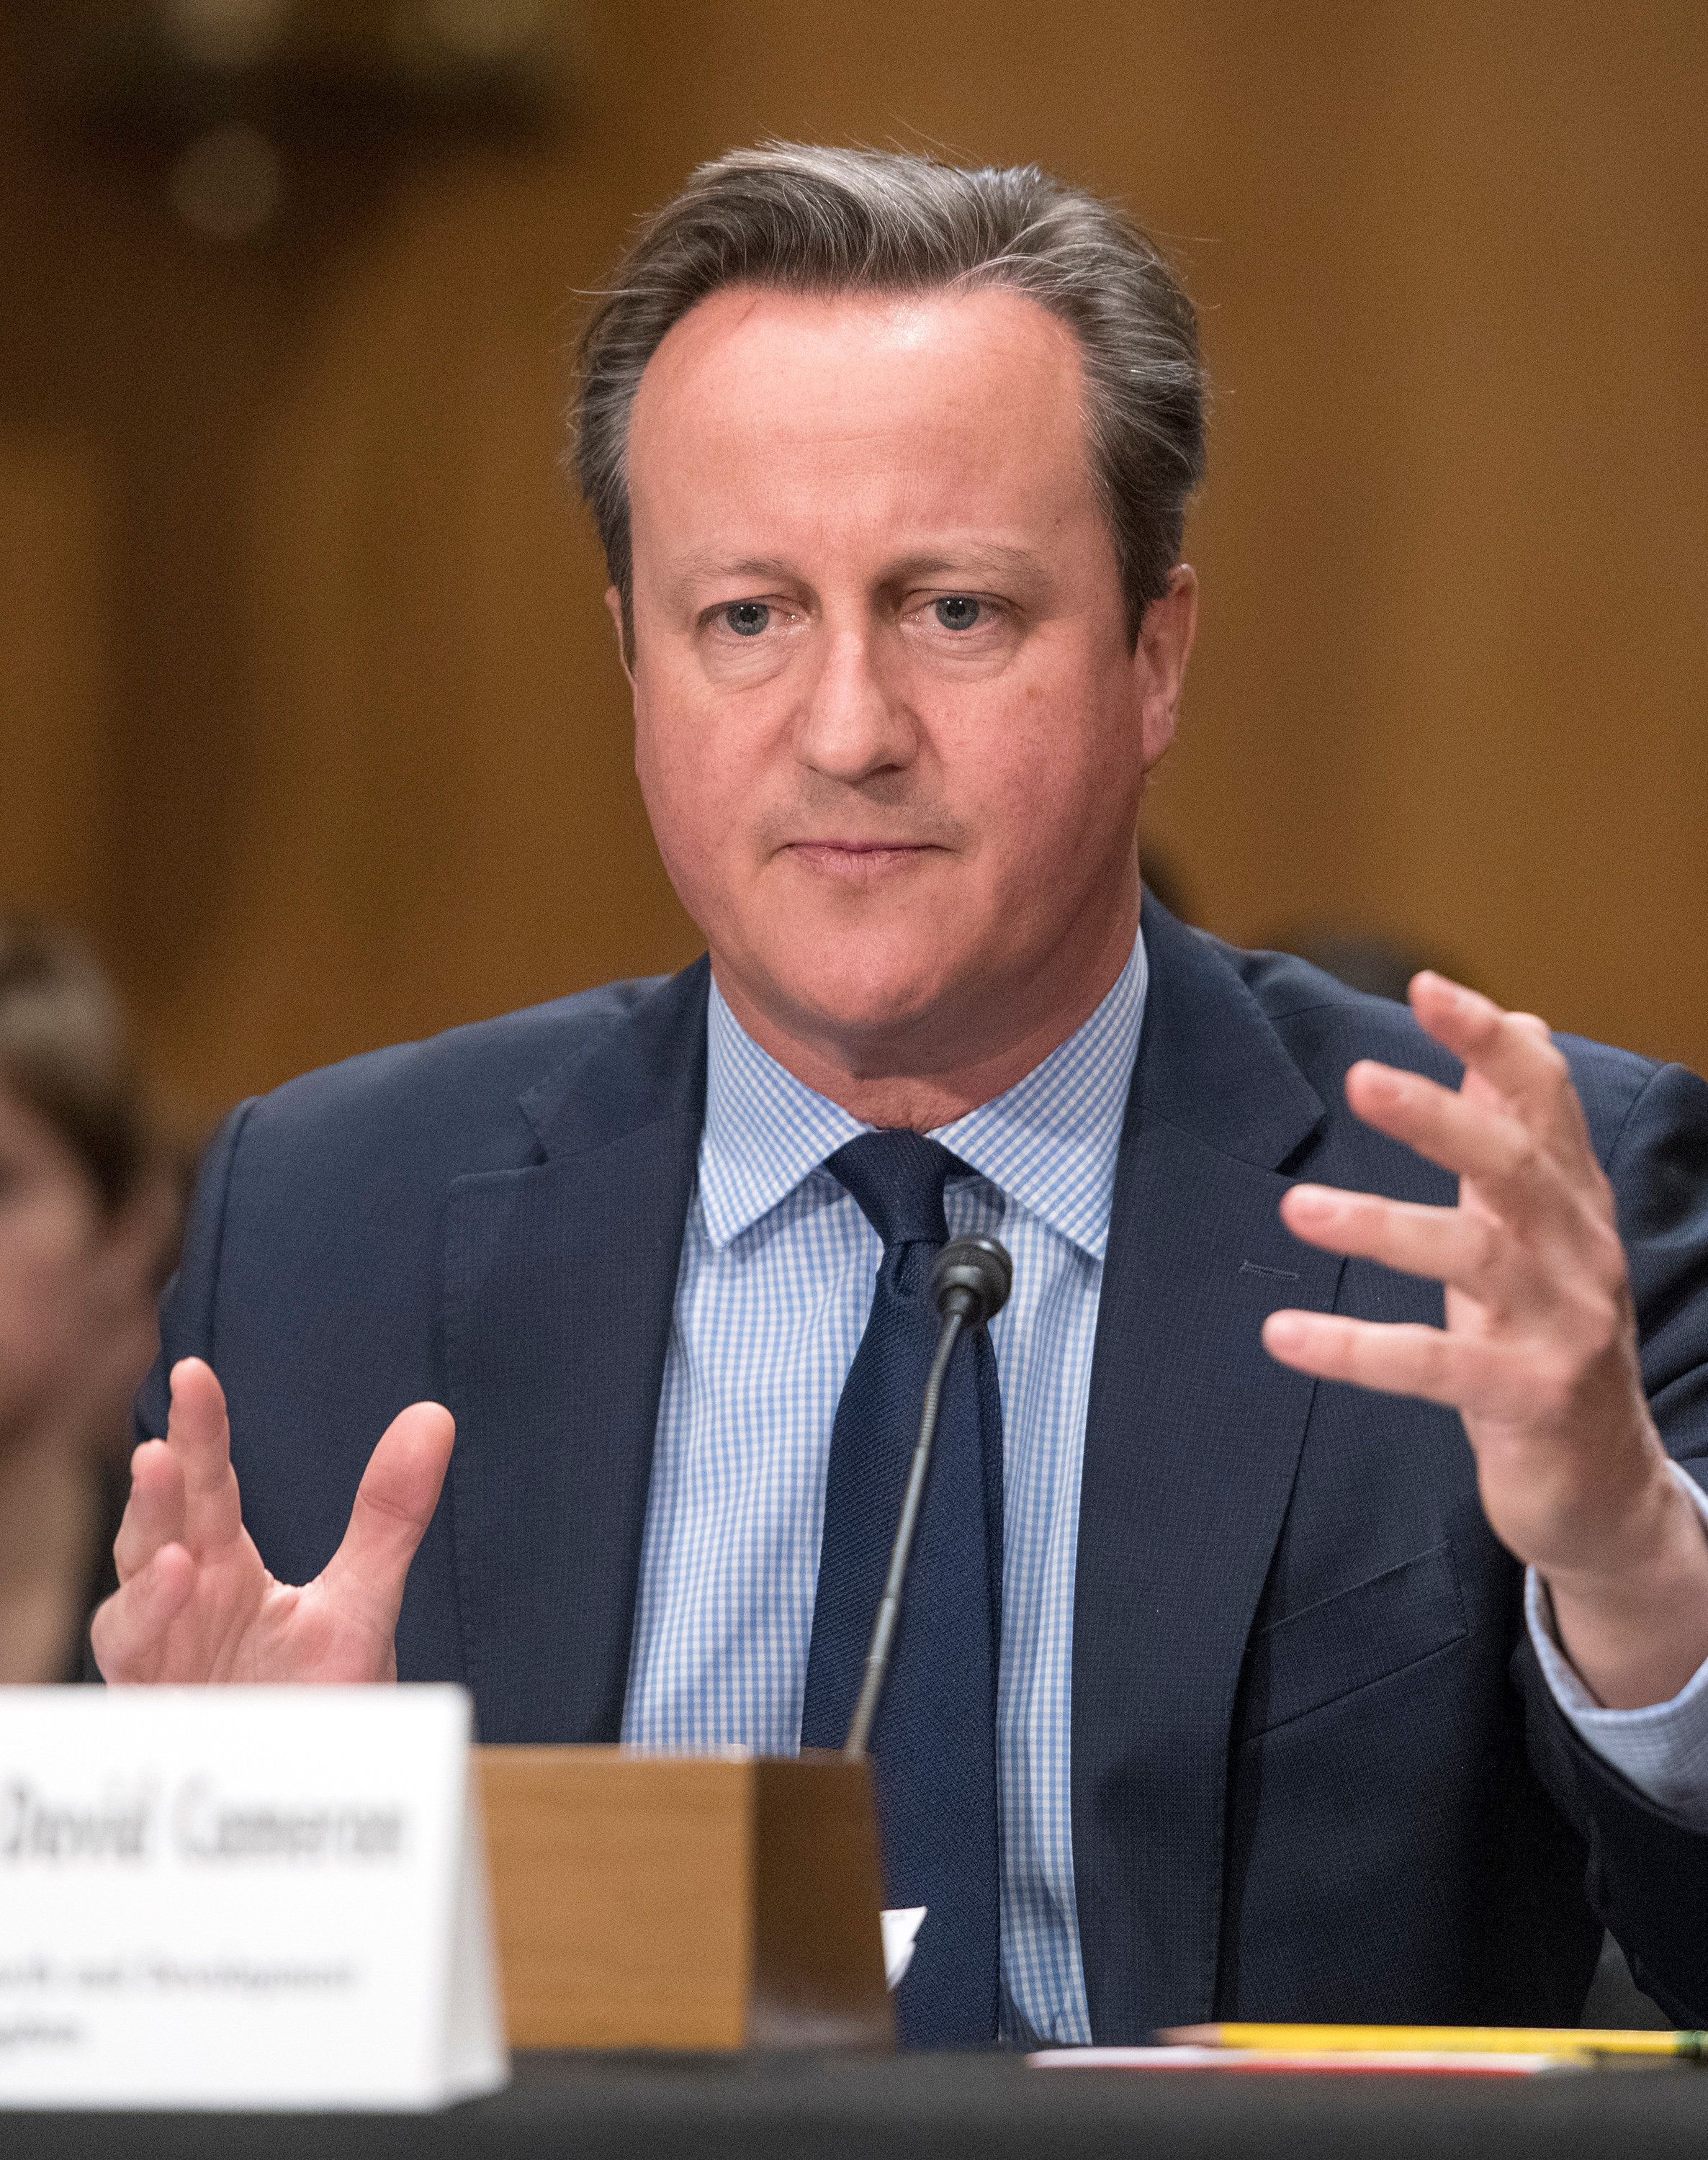 David Cameron Warns Tories To Stay 'Modern' And 'Compassionate' Following